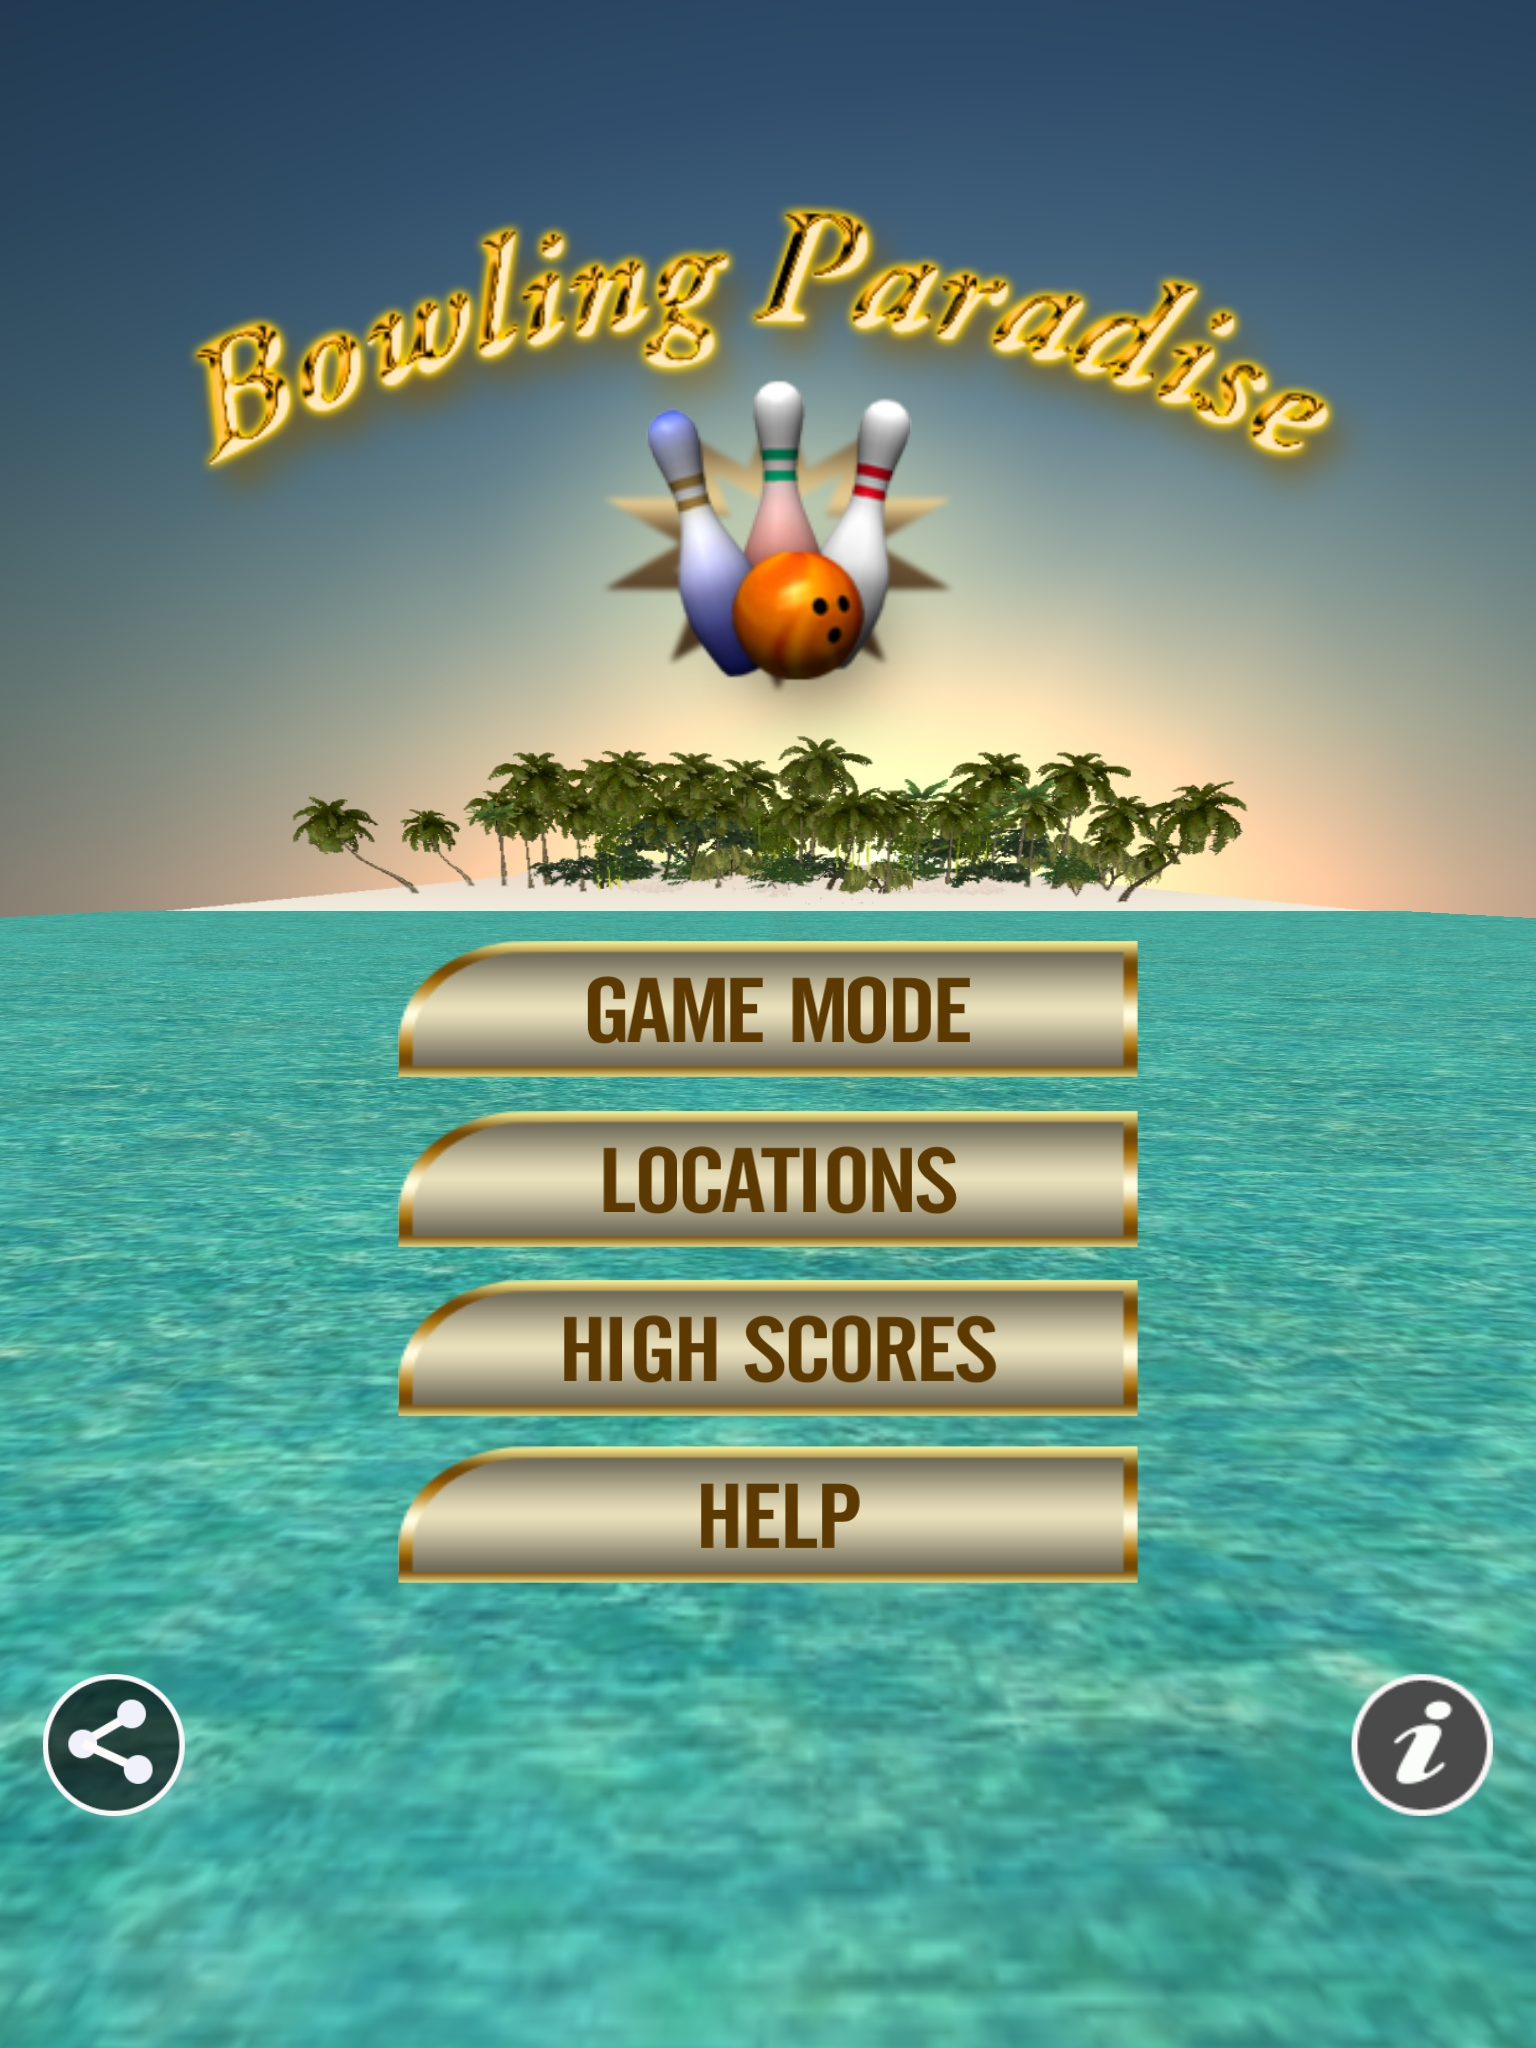 Bowling Paradise 2 Pro iOS Game Review